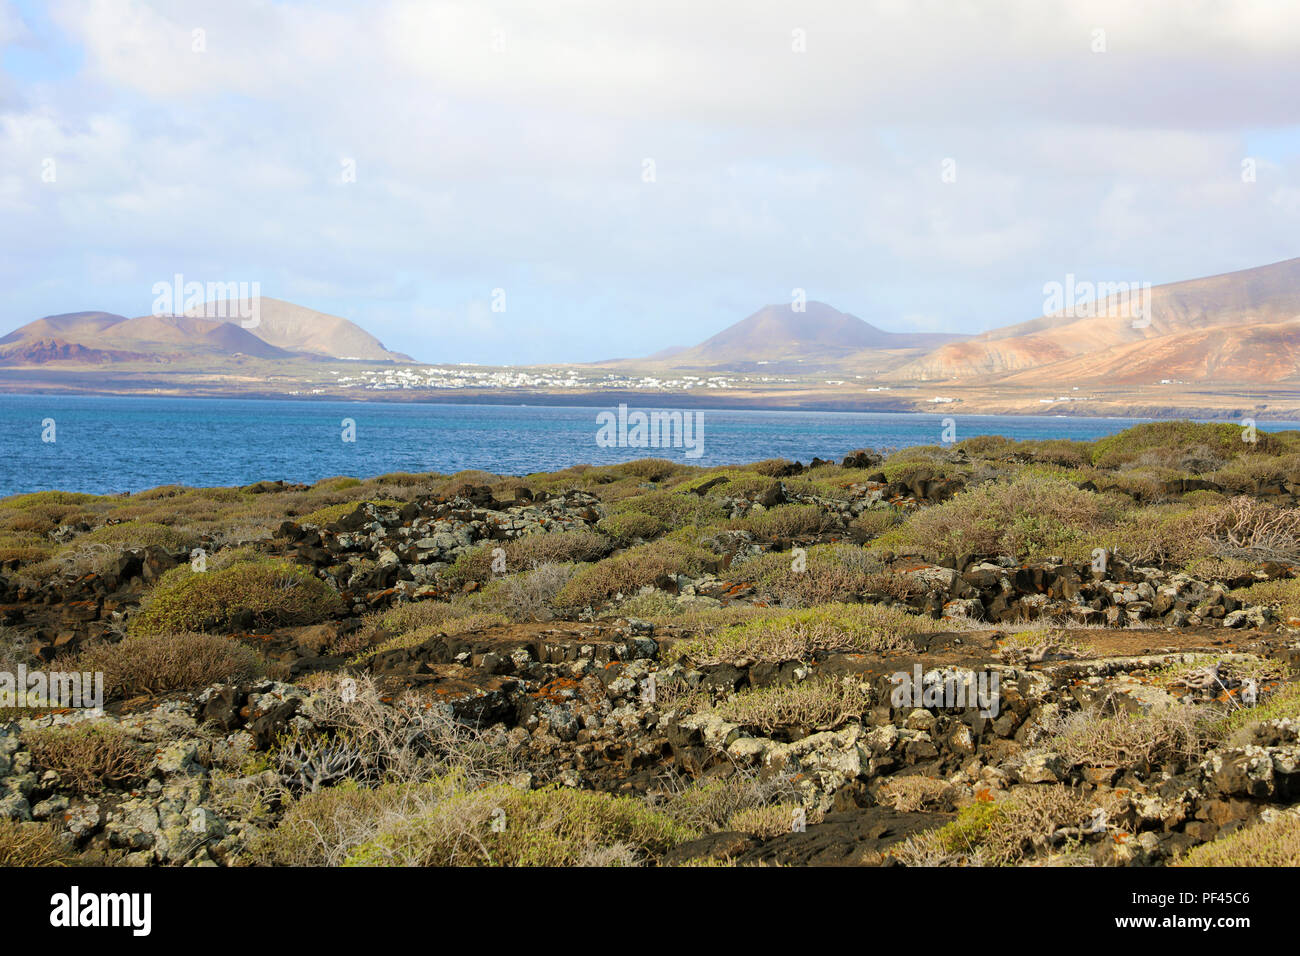 Enchanted landscape on Lanzarote Island with stones, vegetation and mountains on the background, Canary Islands - Stock Image